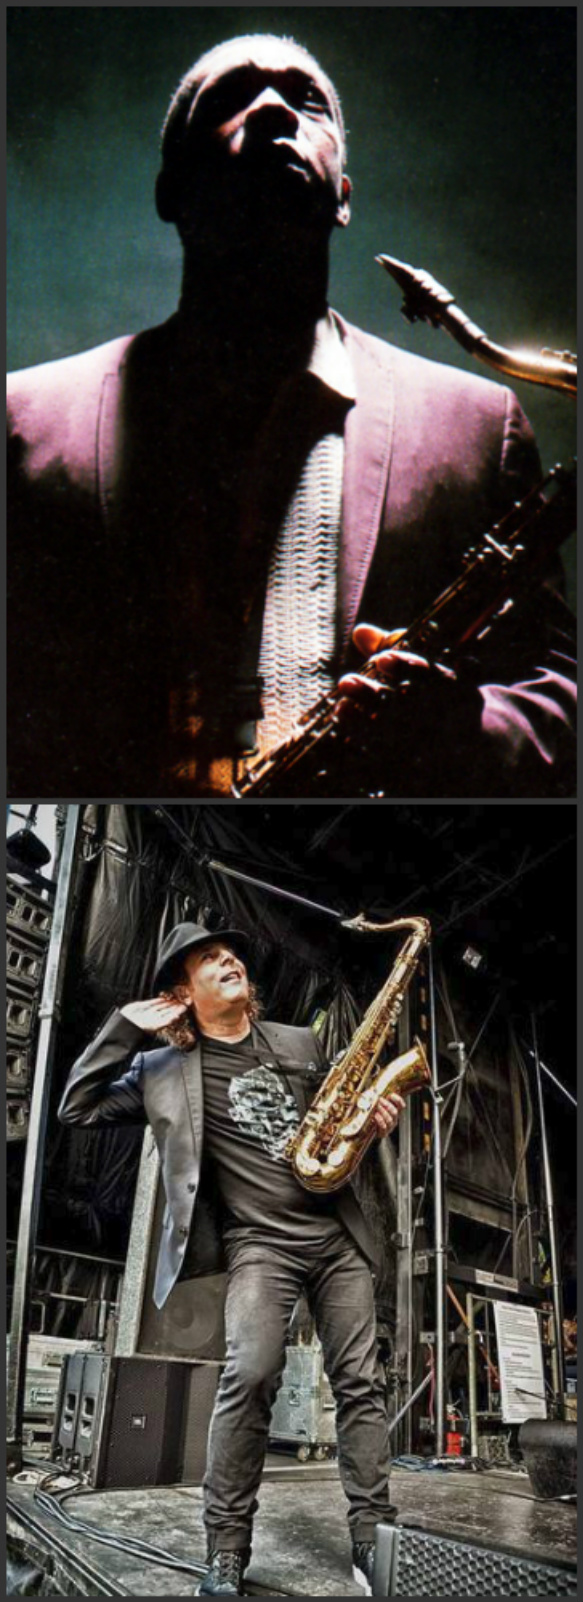 John Coltrane and Boney James; both jazz?